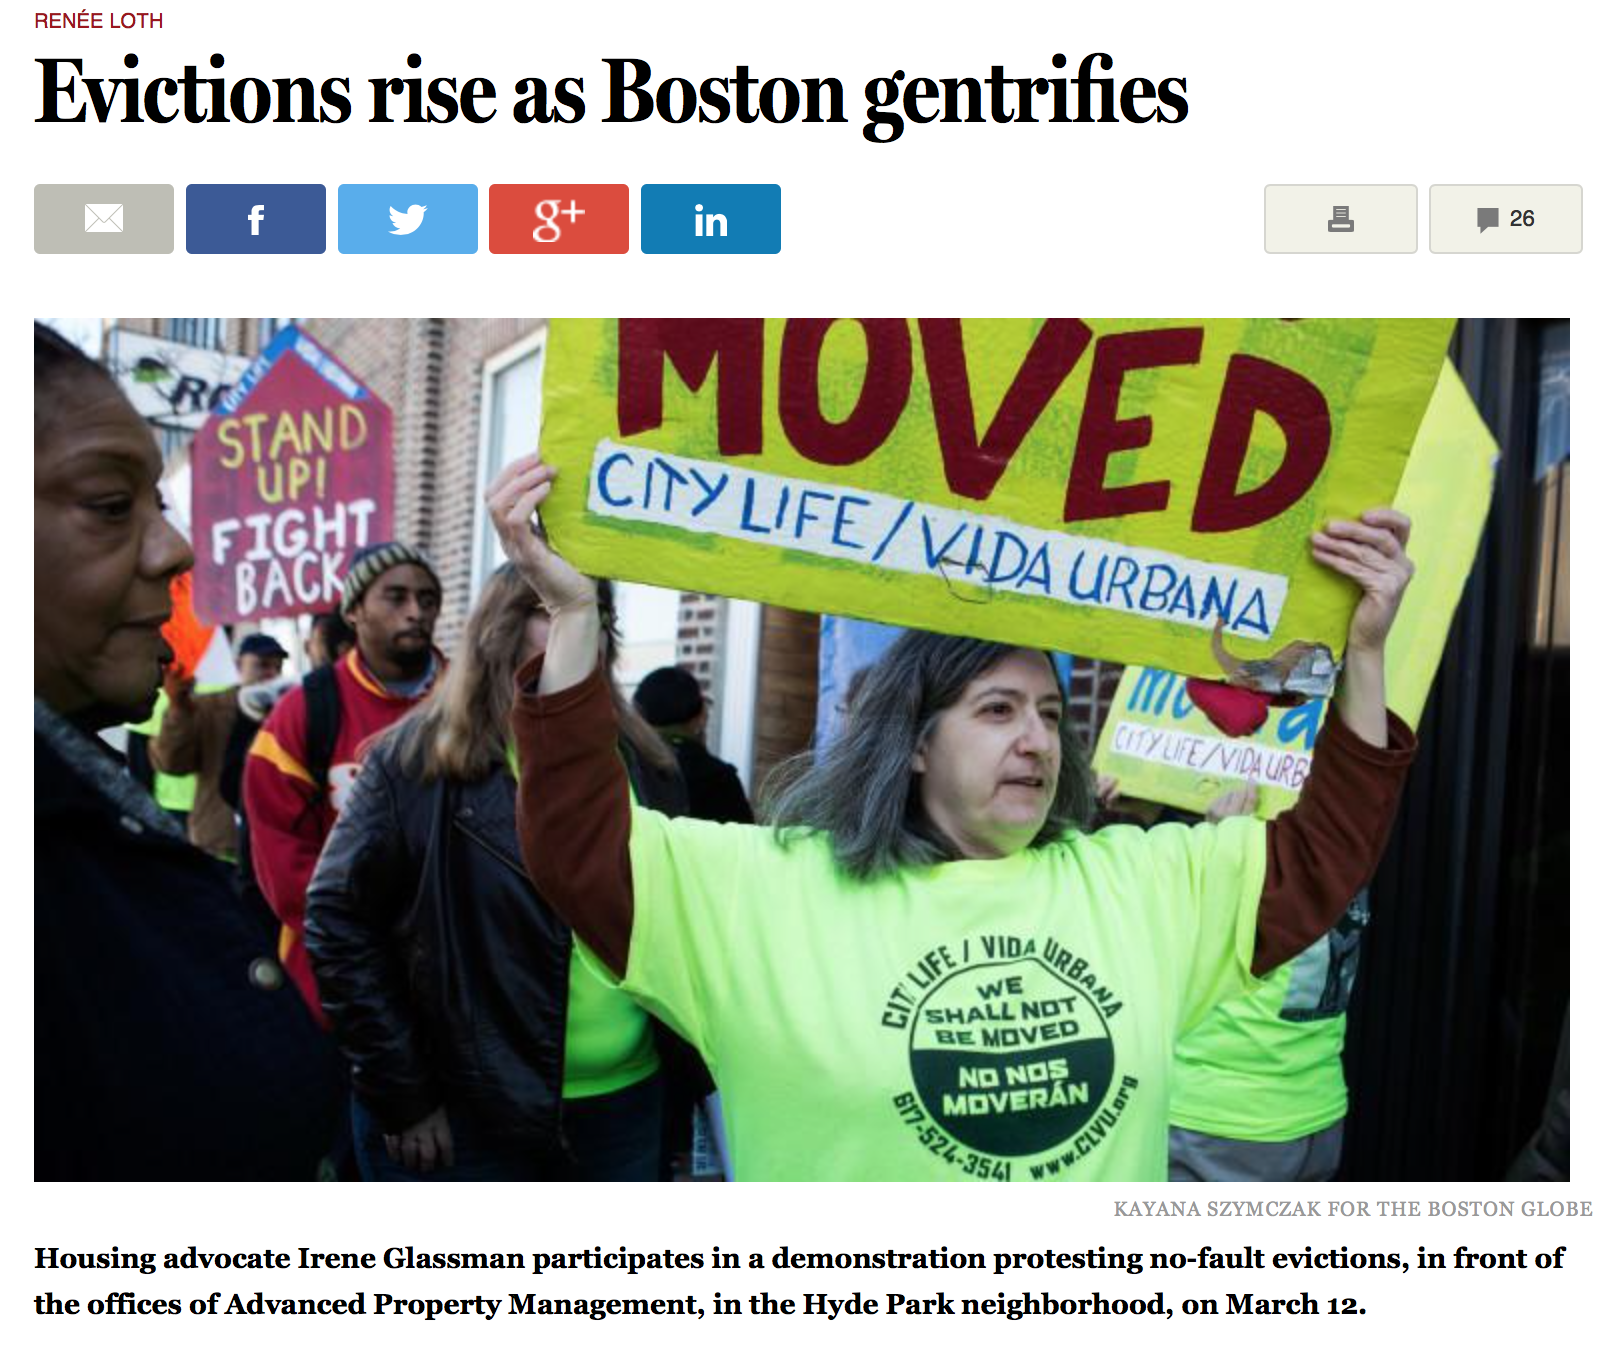 Globe Column: Evictions Rise as Boston Gentrifies